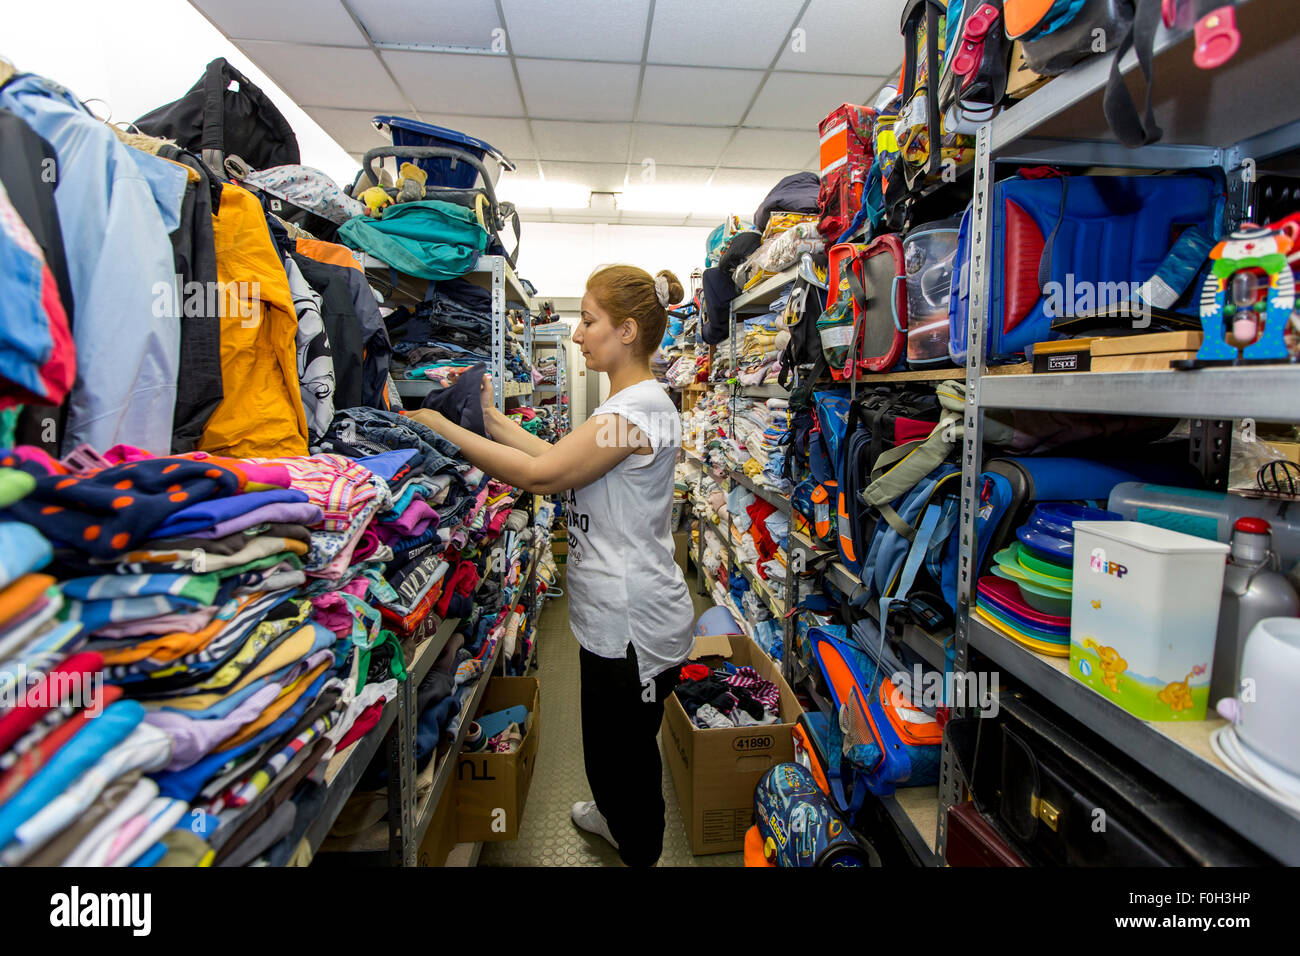 Warehouse for refugees from Syria and other countries, donations of all kinds, by locals, are given to the refugees - Stock Image